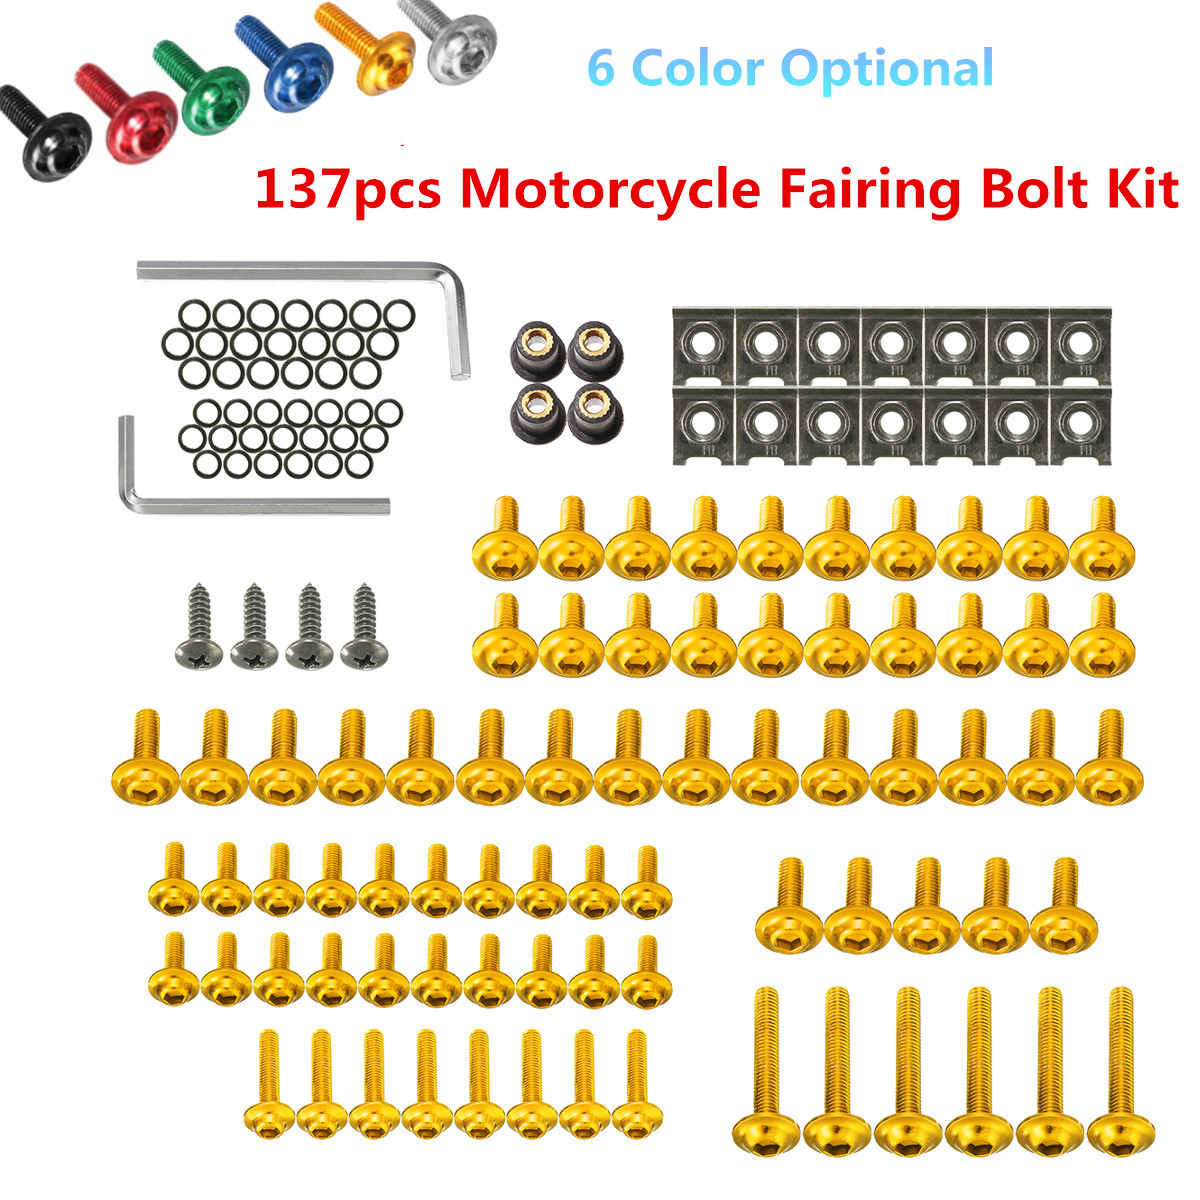 137pcs M6 Universal Motorcycle Fairing Body Bolts Kit Spire Speed Fastener Clips Screw Nuts For Honda/Yamaha/Kawasaki/Suzuki цены